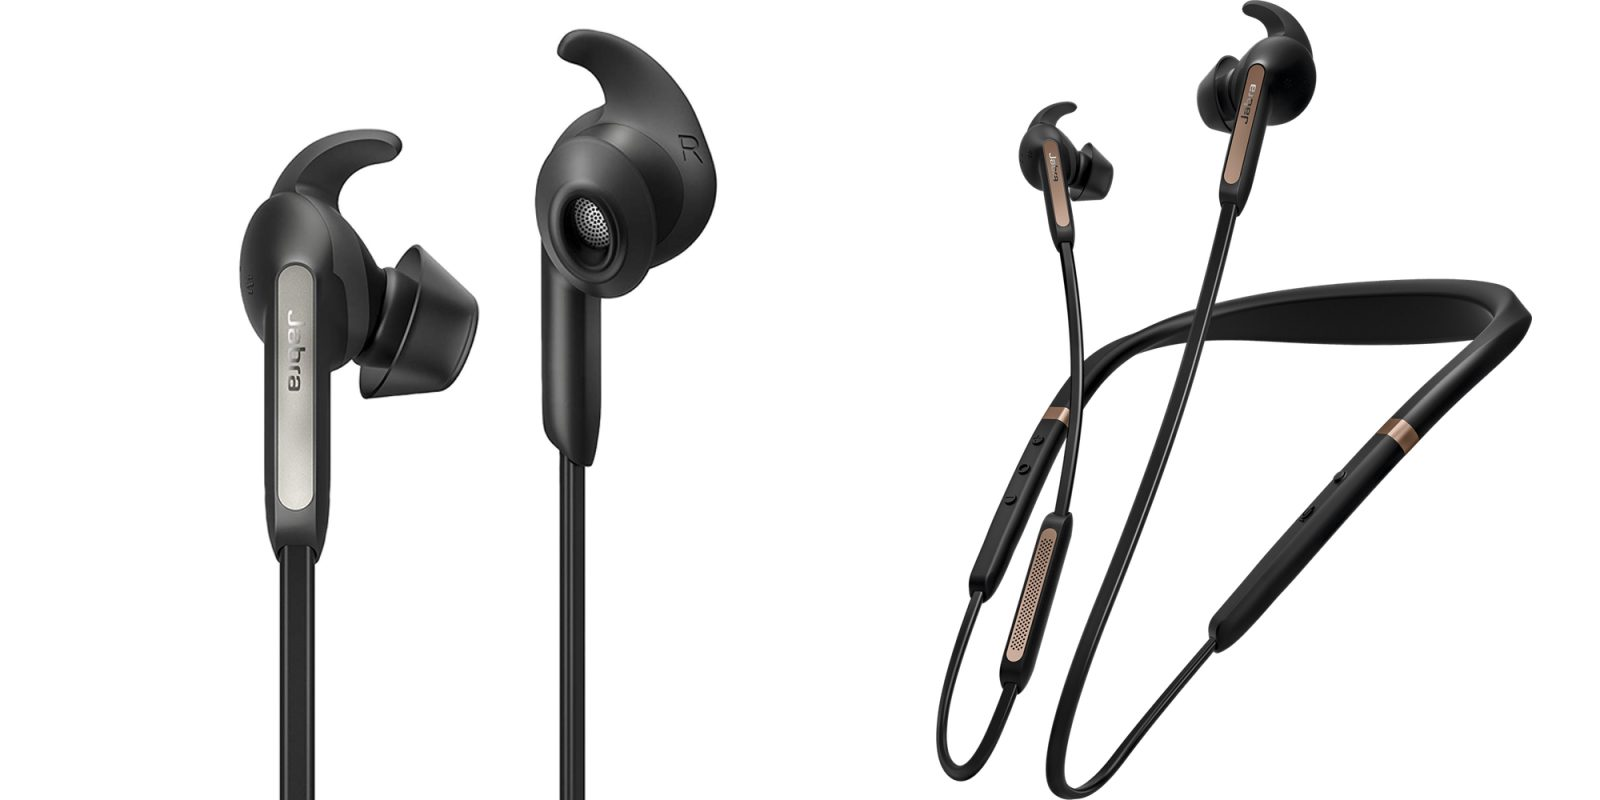 Jabra S 100 Elite 65e Bluetooth Earbuds Have A Dedicated Alexa Siri Button 50 Off 9to5toys